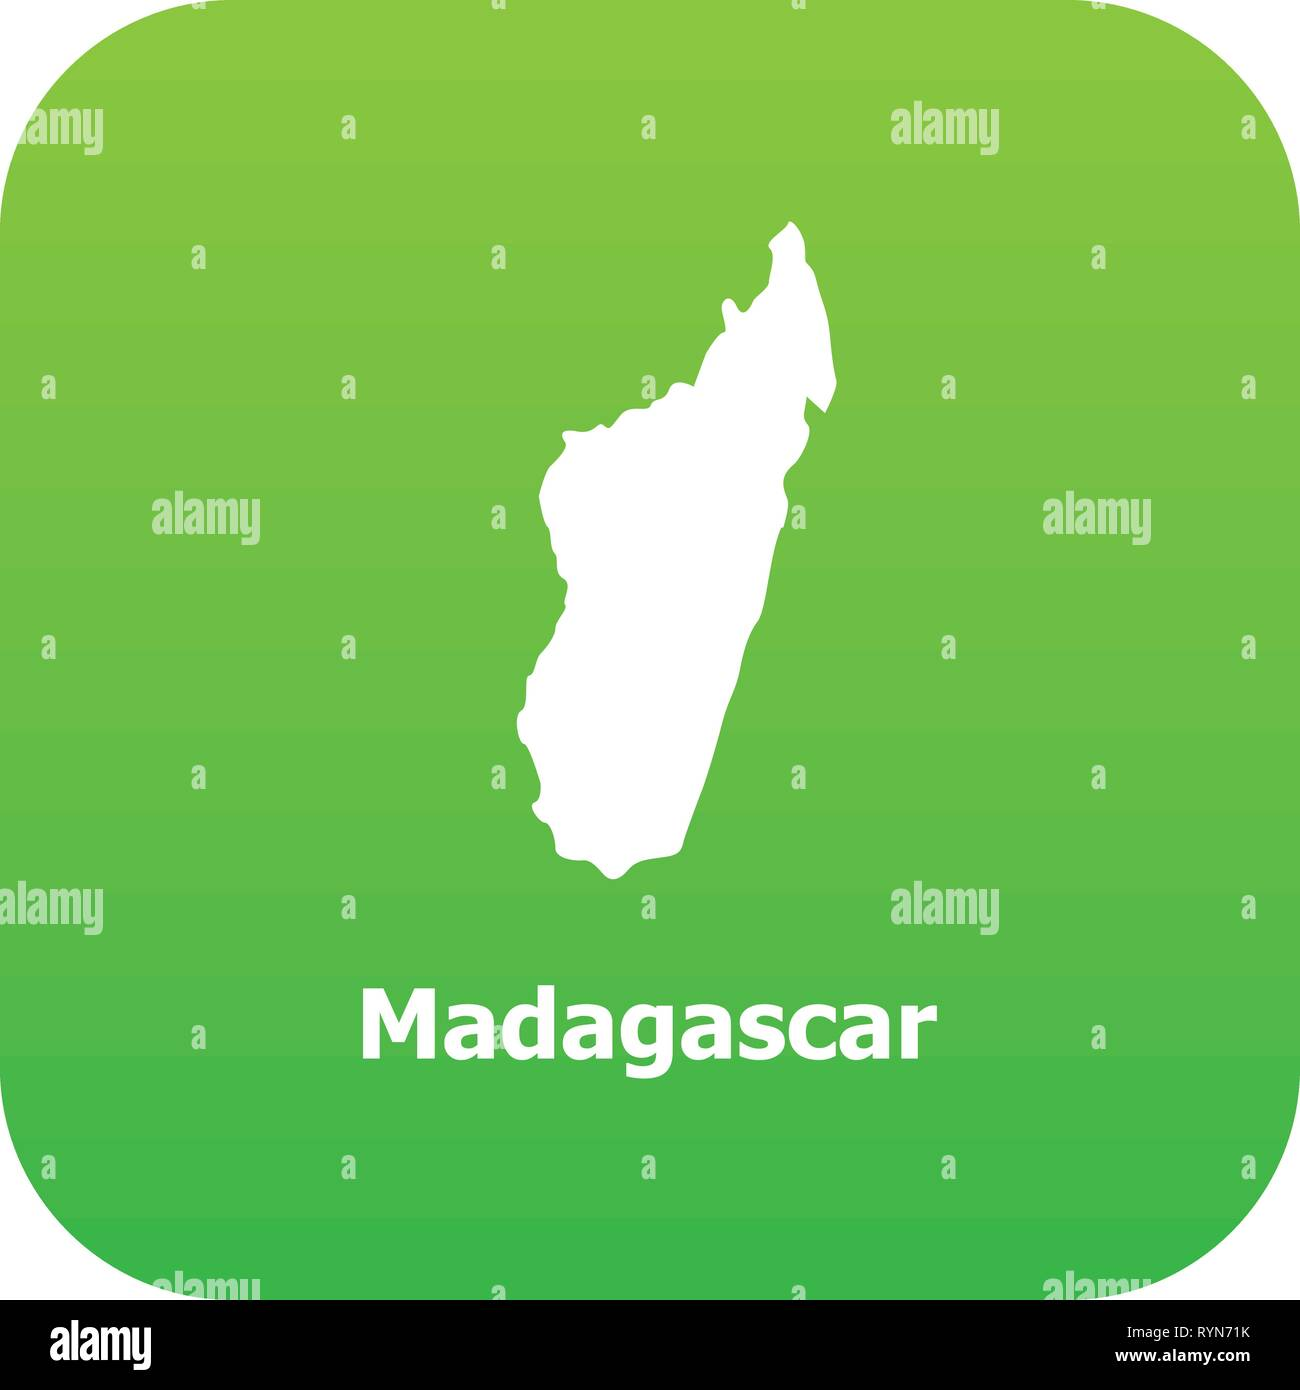 Madagascar Carte Simple.L Icone De La Carte De Madagascar Le Style Simple Vecteurs